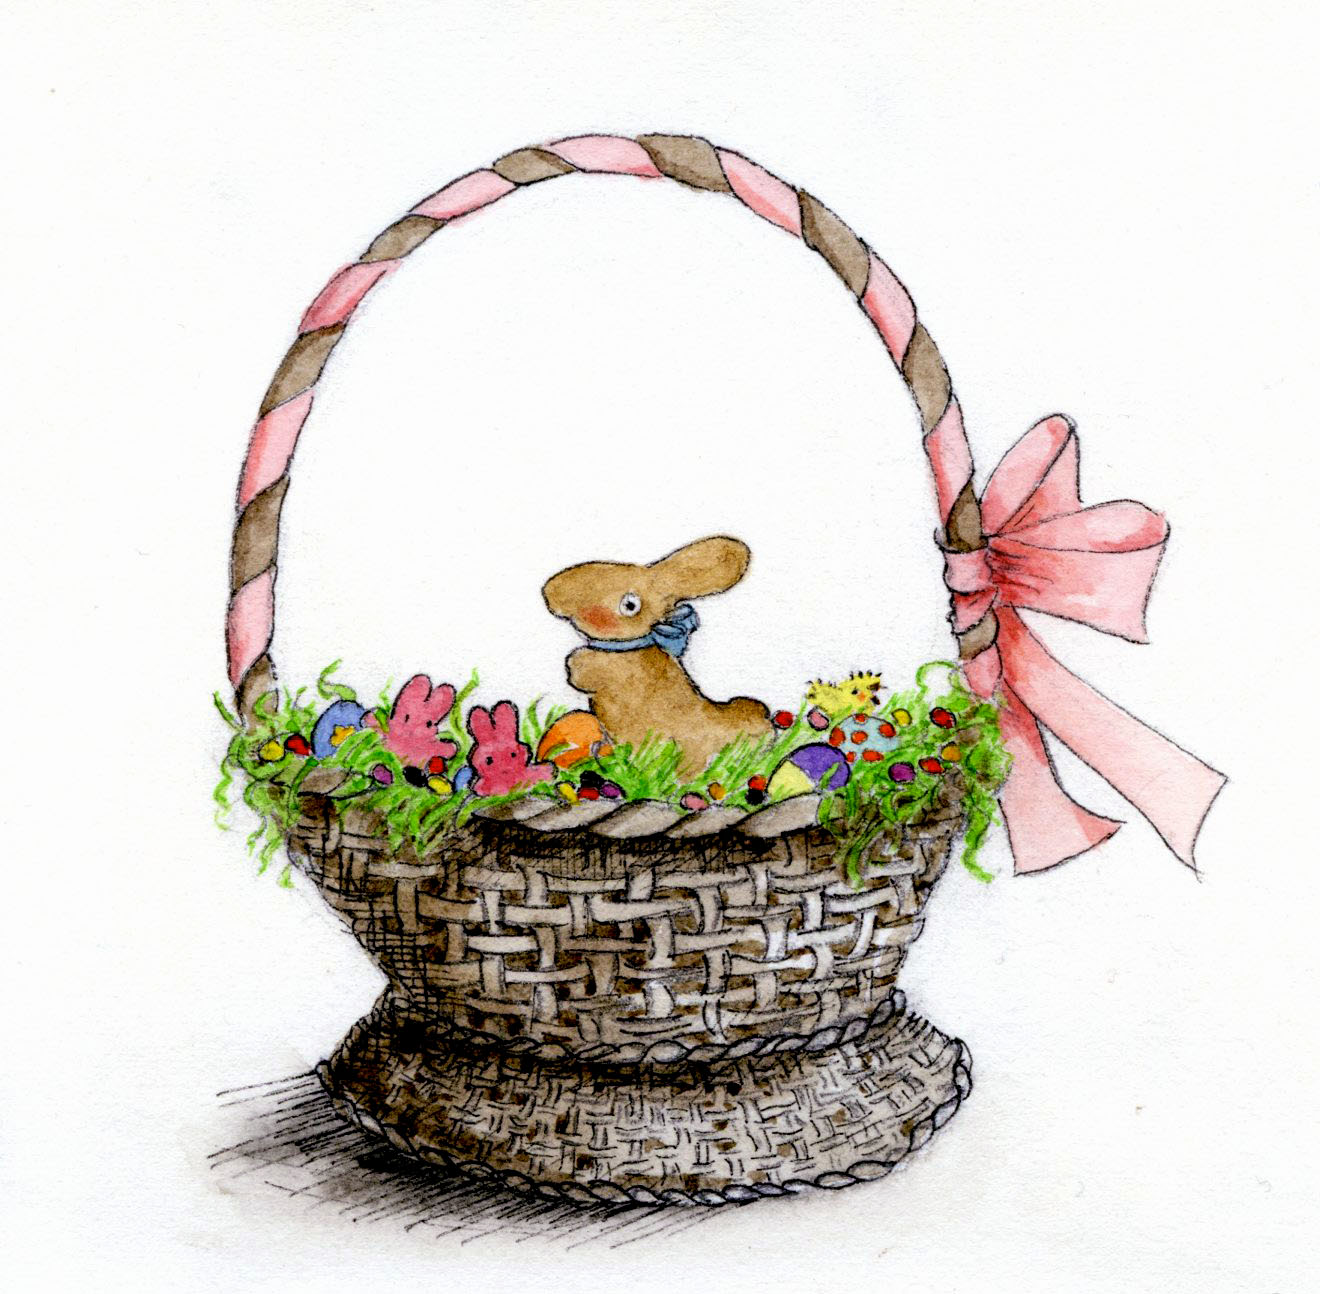 1320x1294 How To Draw And Paint A Treat Filled Easter Basket